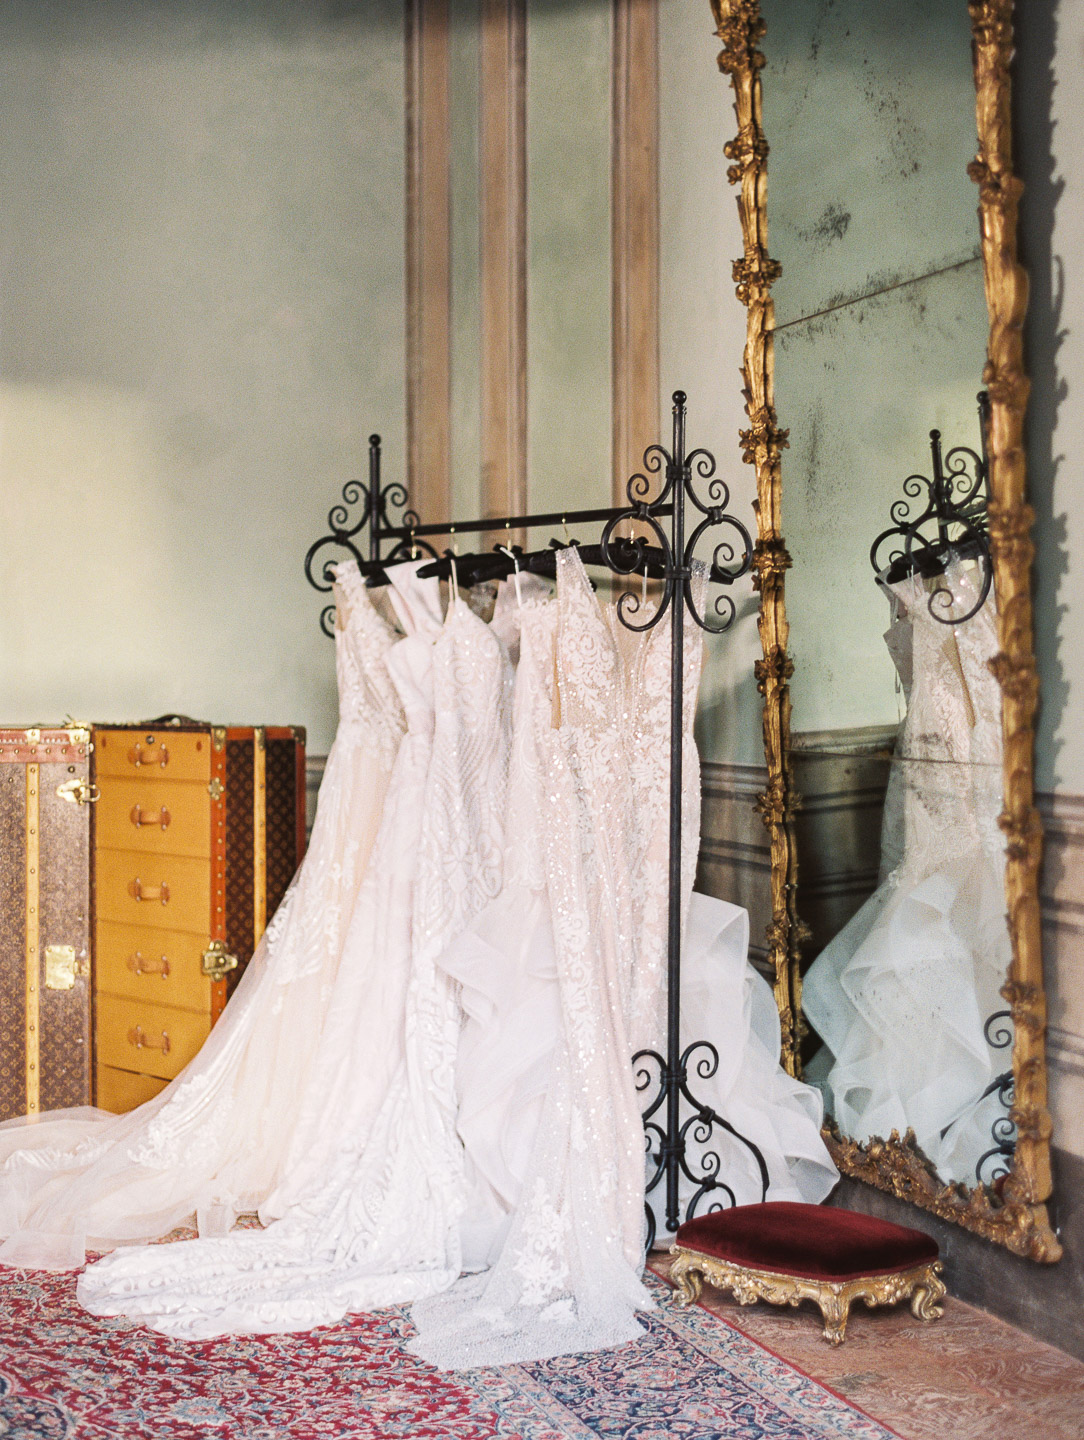 Villa Balbiano luxury property Lake Como Italy Milan best destination event wedding venue unique chic interiors Master Suite dressing room antique collection furniture couture ceremony bridal dresses